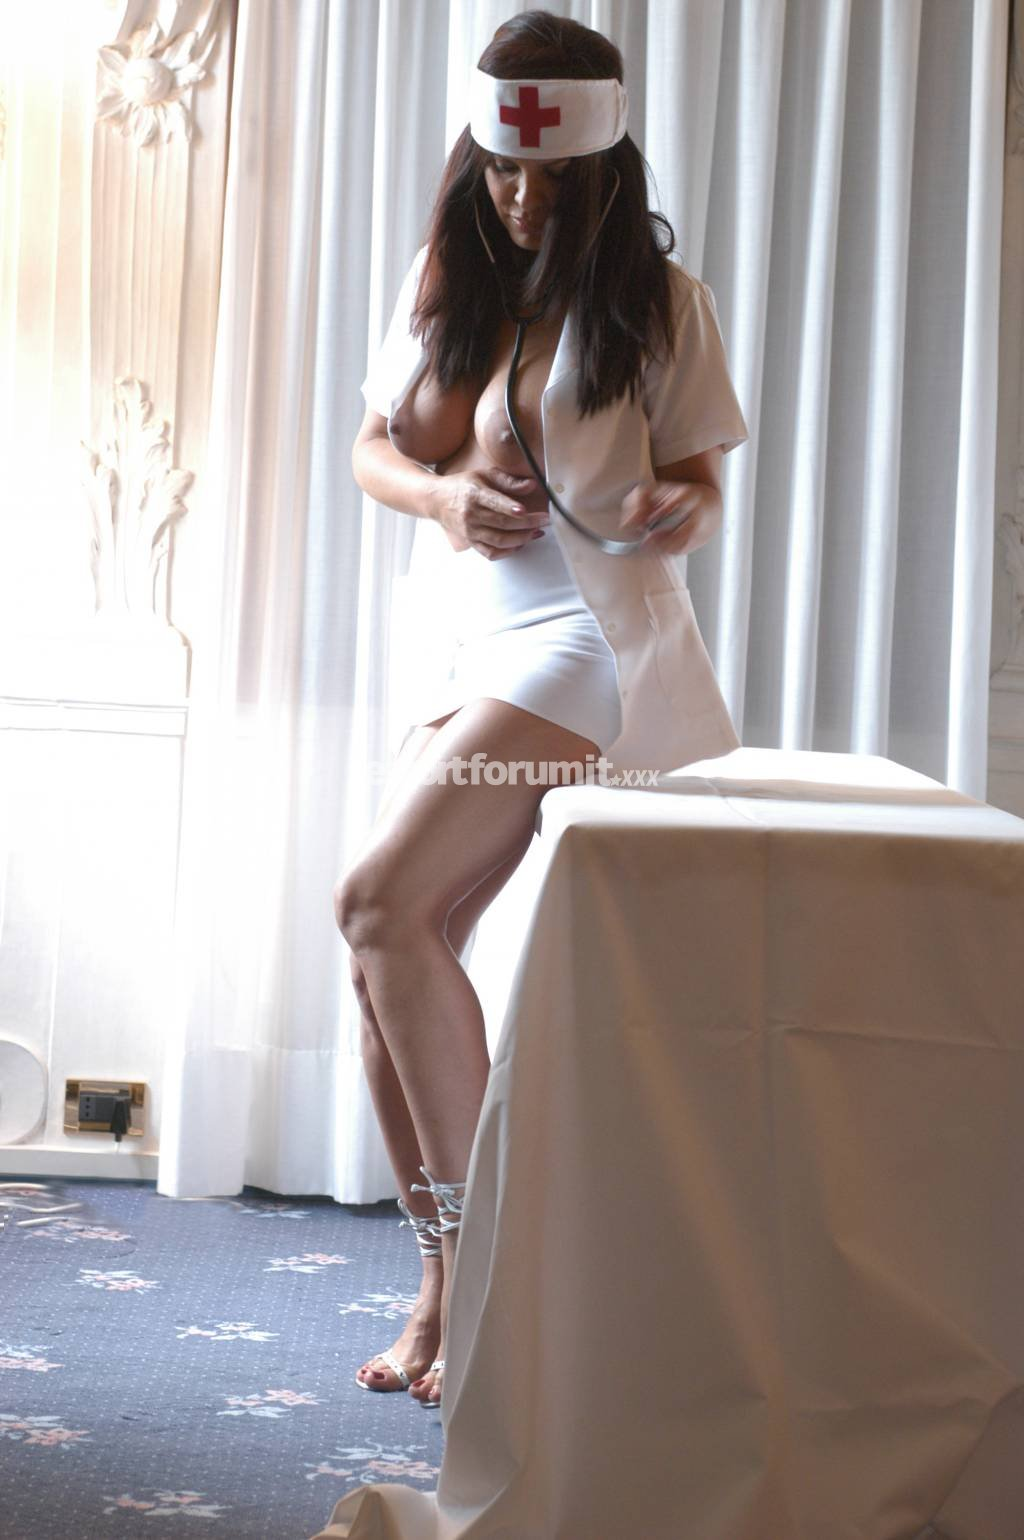 escort cagliari escortforum vicenza